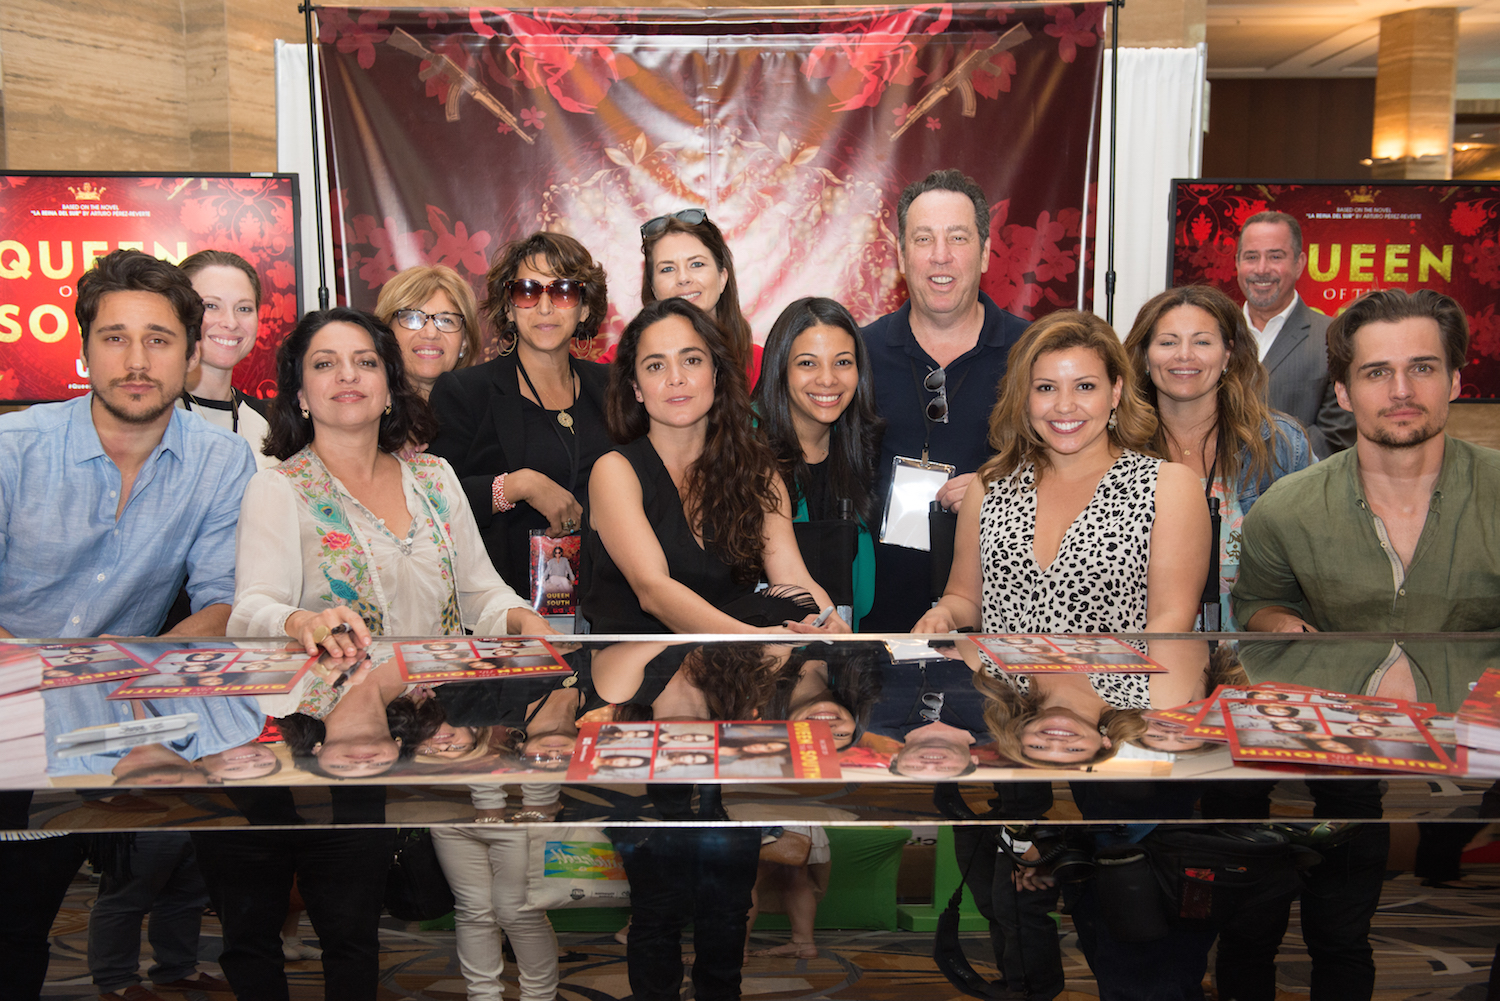 hispanicize-photos-event-miami-84